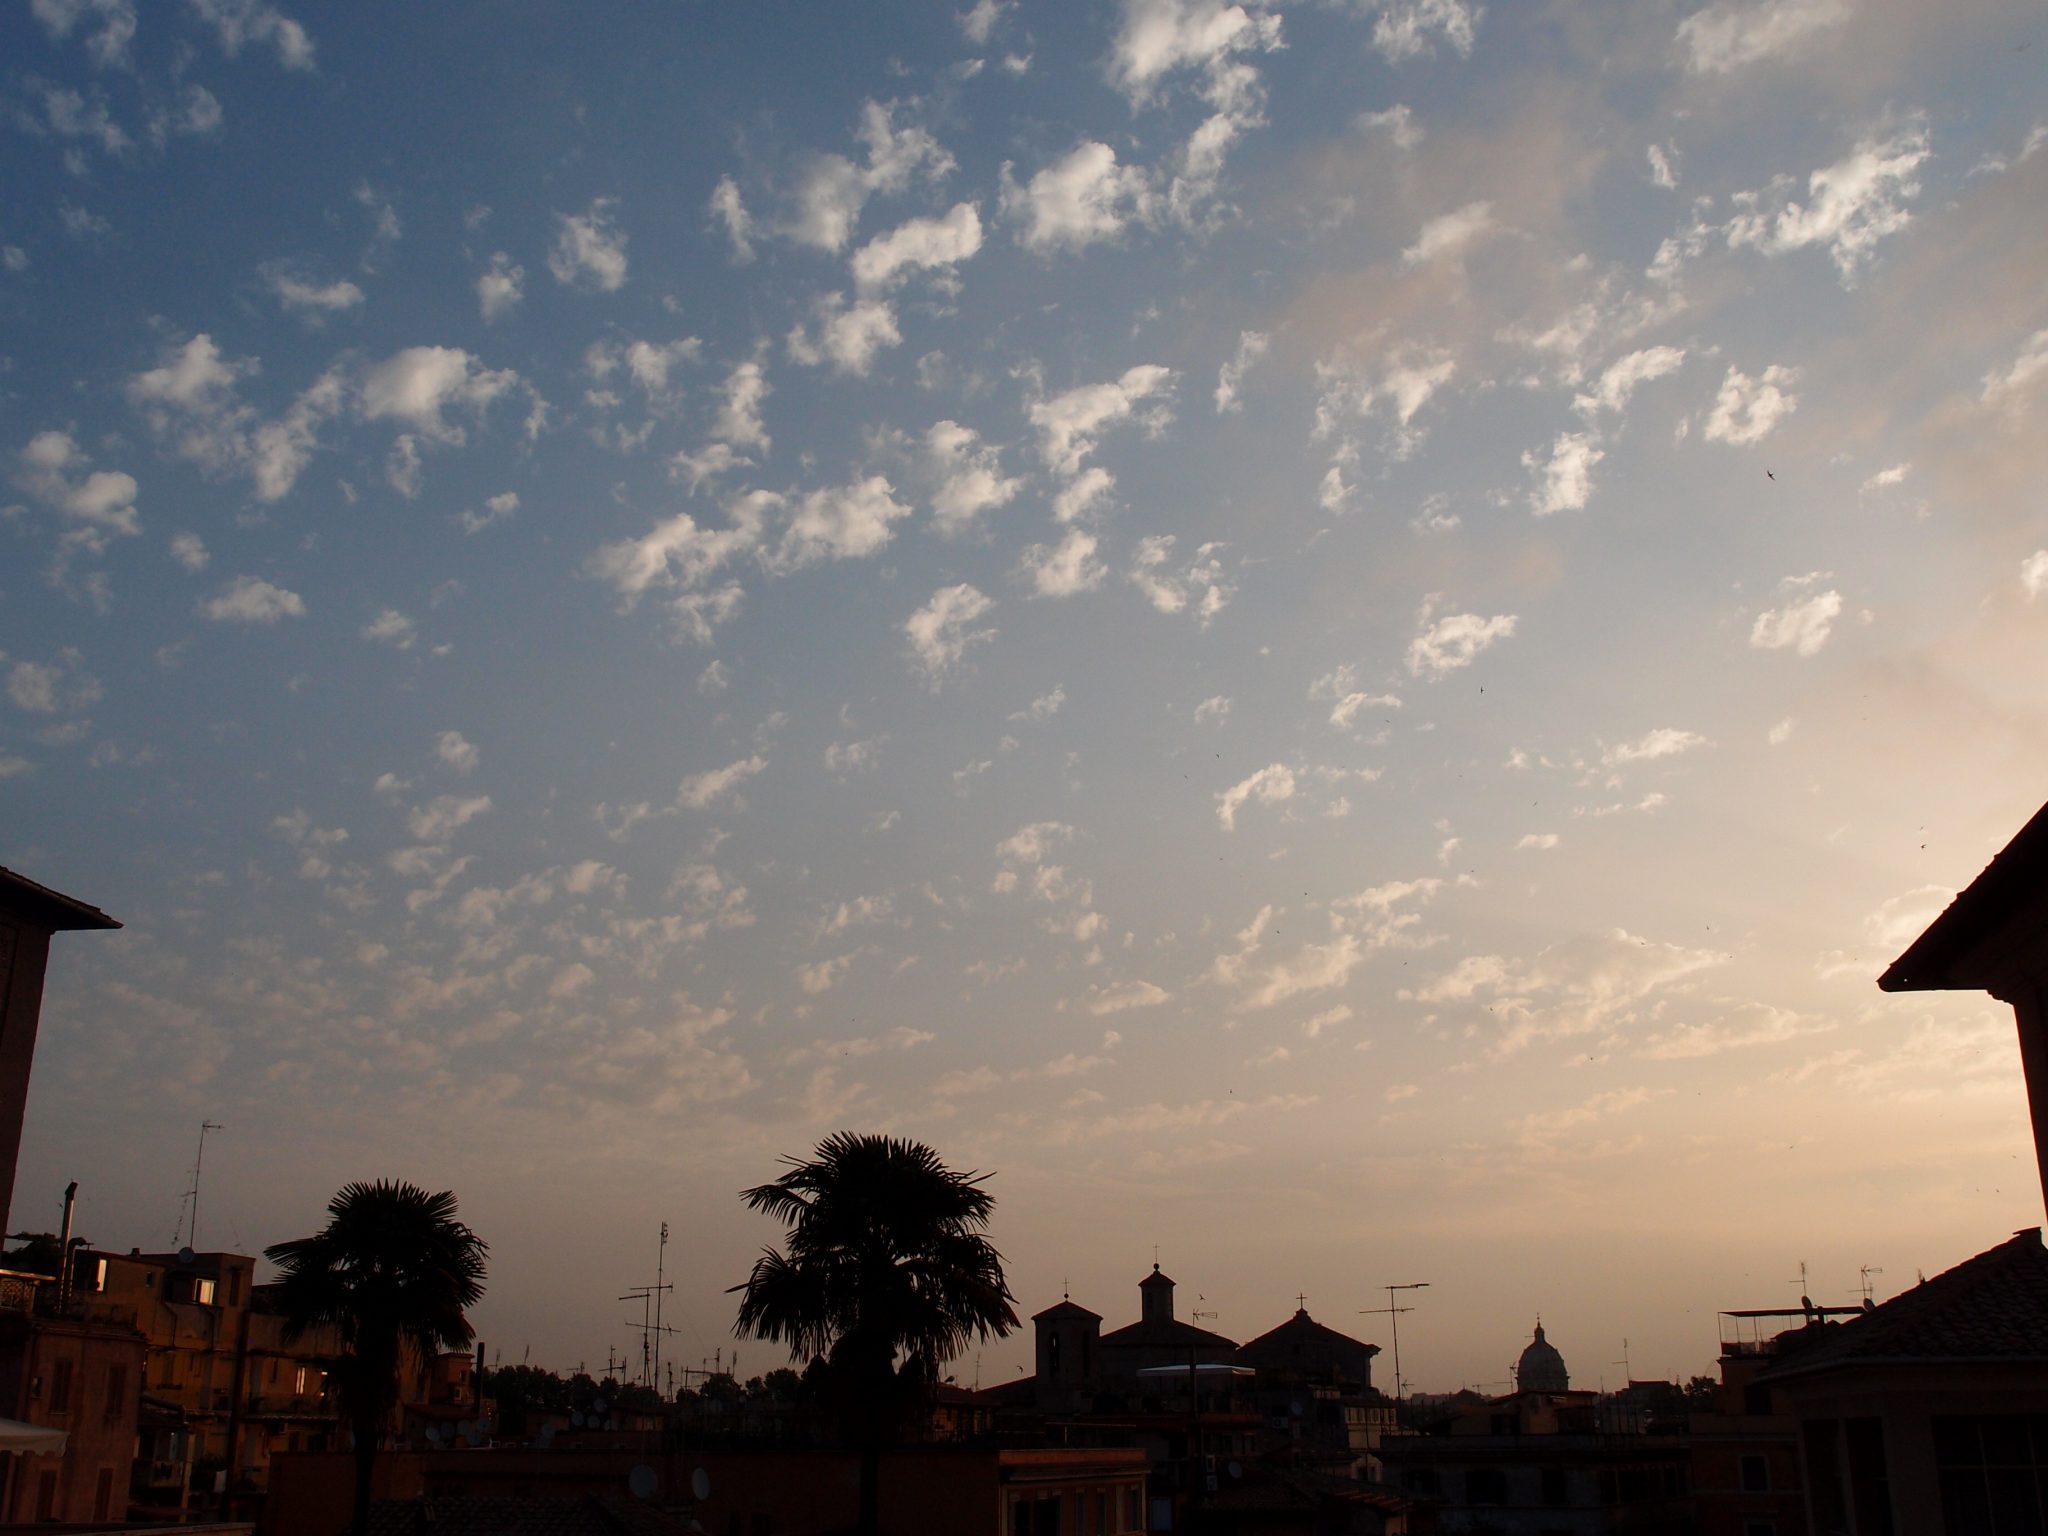 Roman Dawn, at 6:26AM on July 6, 2016, as I threw open the window shutters of my Hotel room.